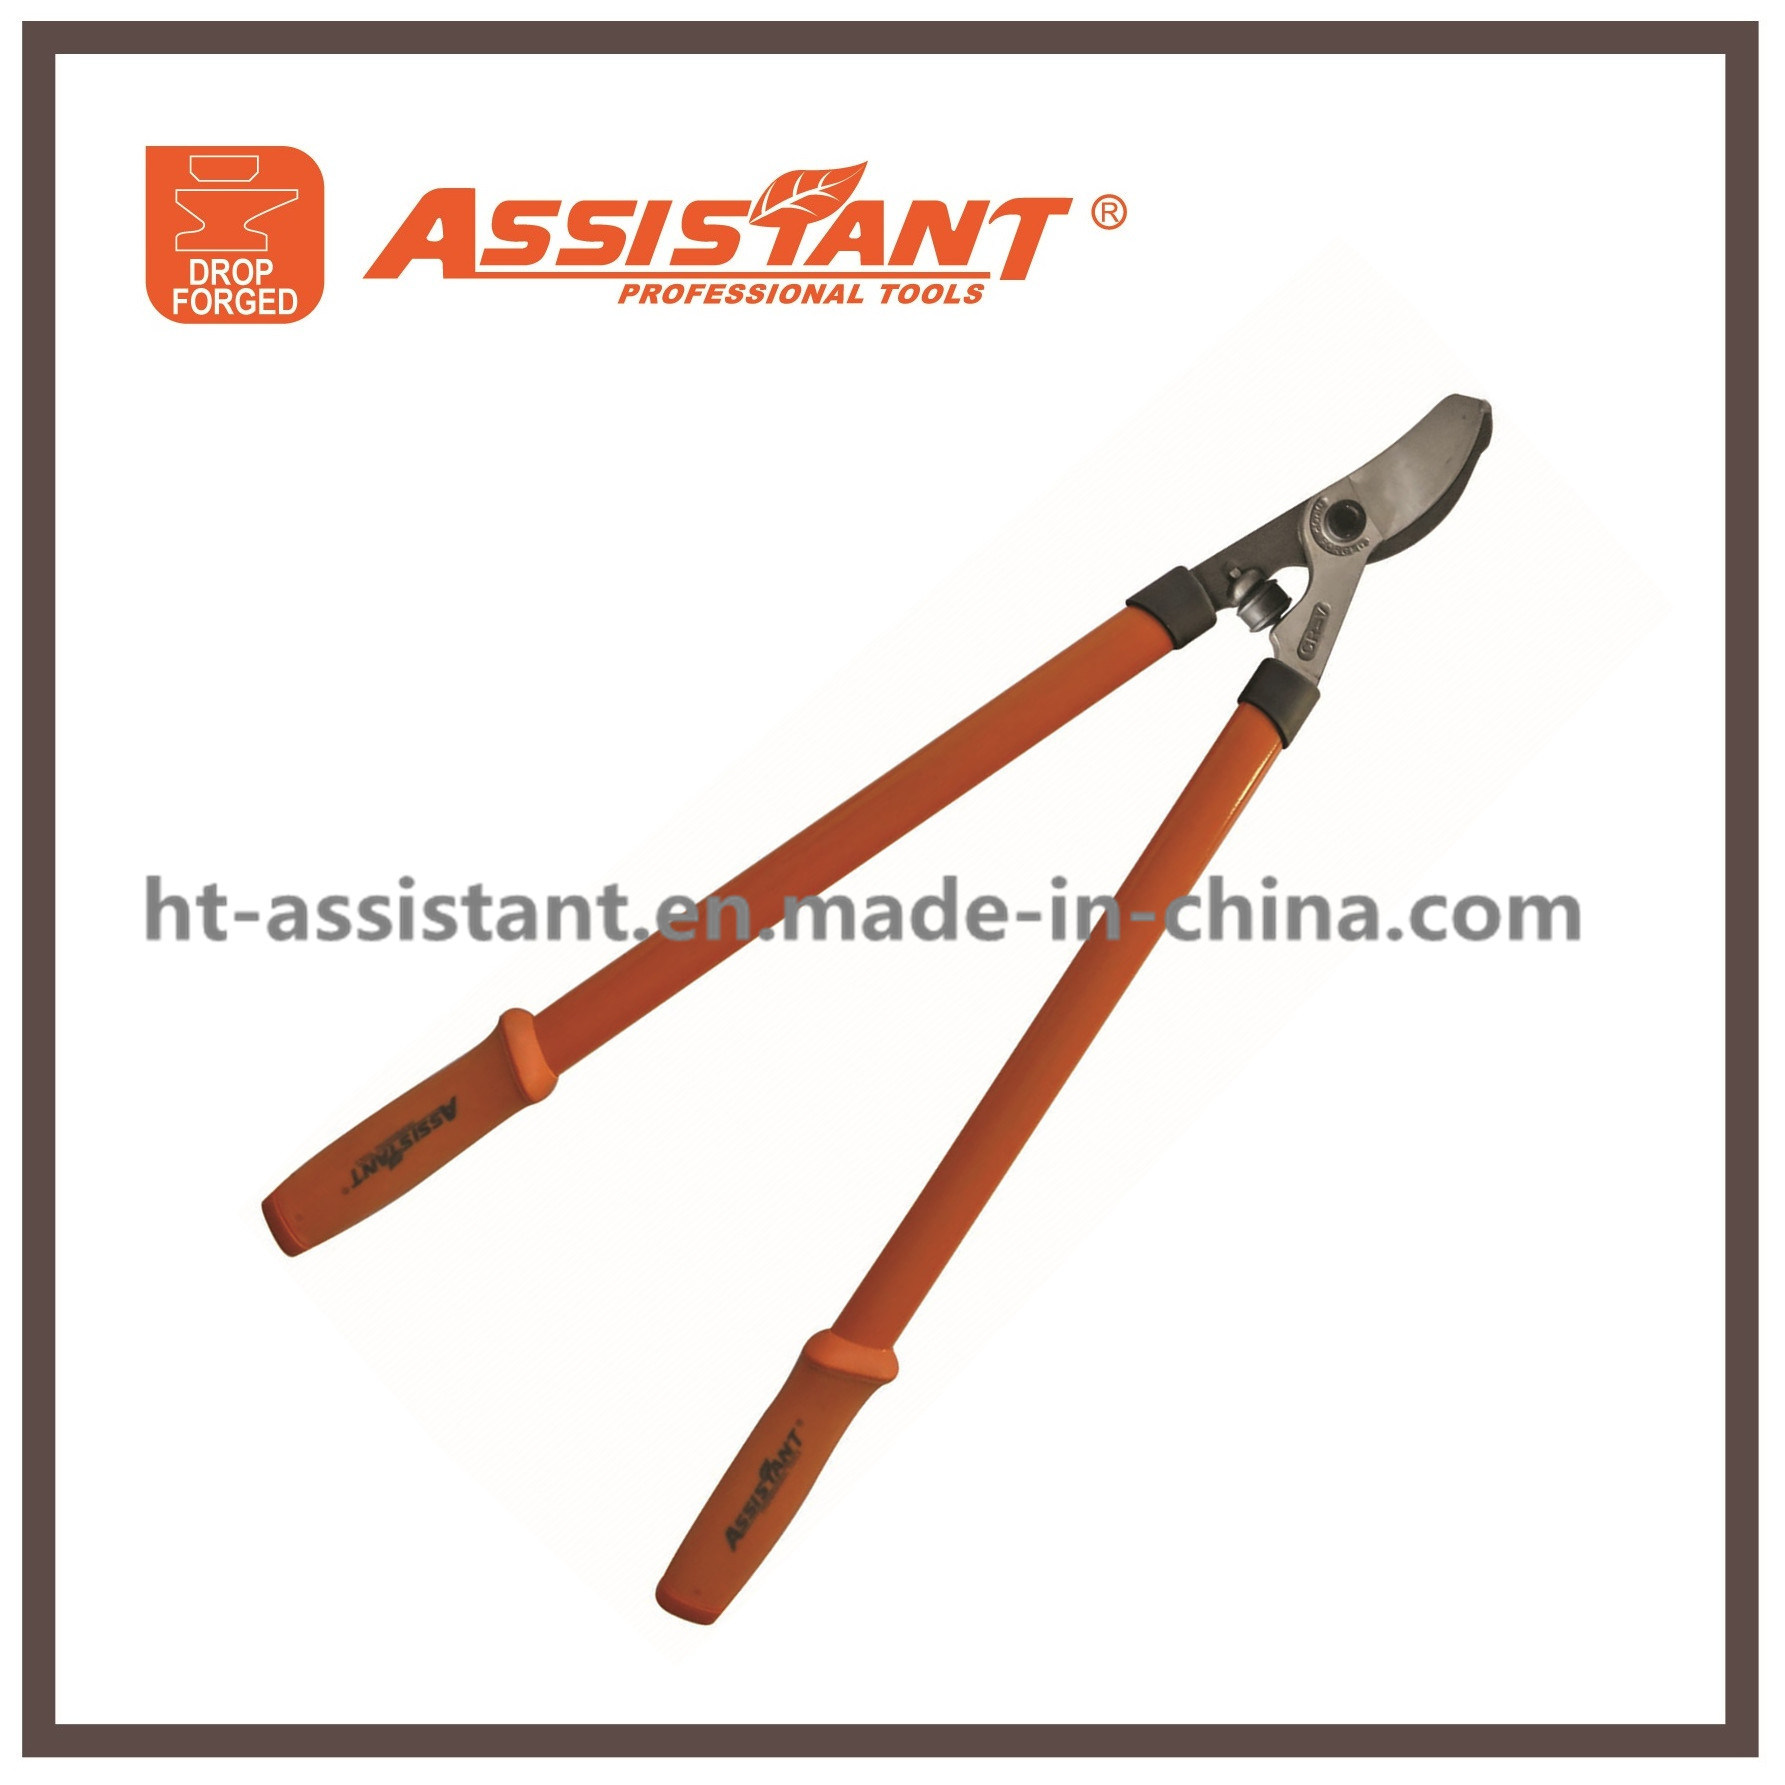 High Performance Orchard Drop Forged Bypass Lopper